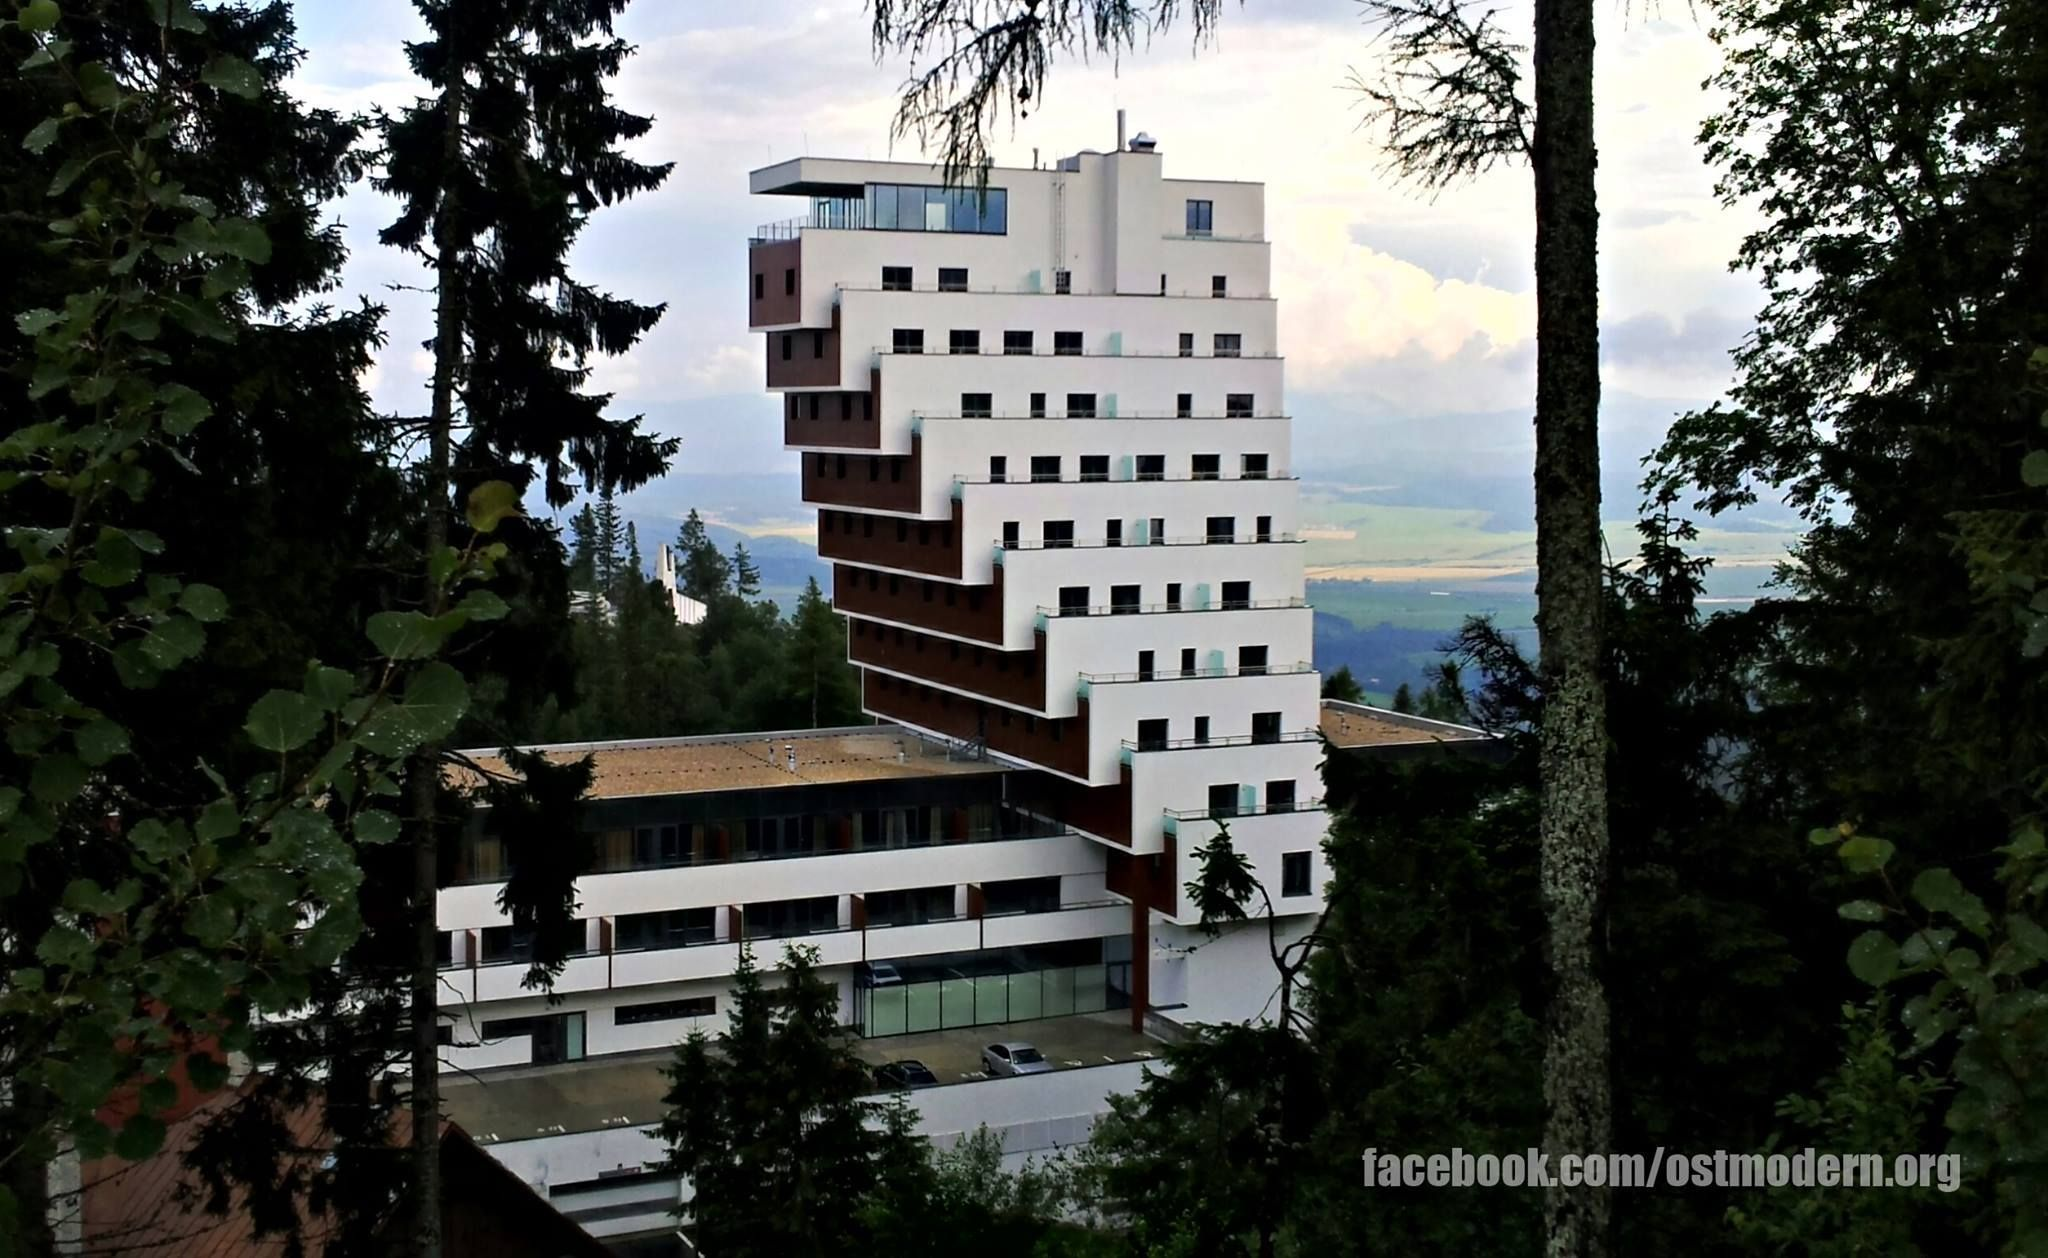 Panorama Hotel Ski Resort In Strbske Pleso High Tatras Loved The Stay Here In 1994 And Hiking The High Tatras Amazing Architecture Ski Resort High Tatras